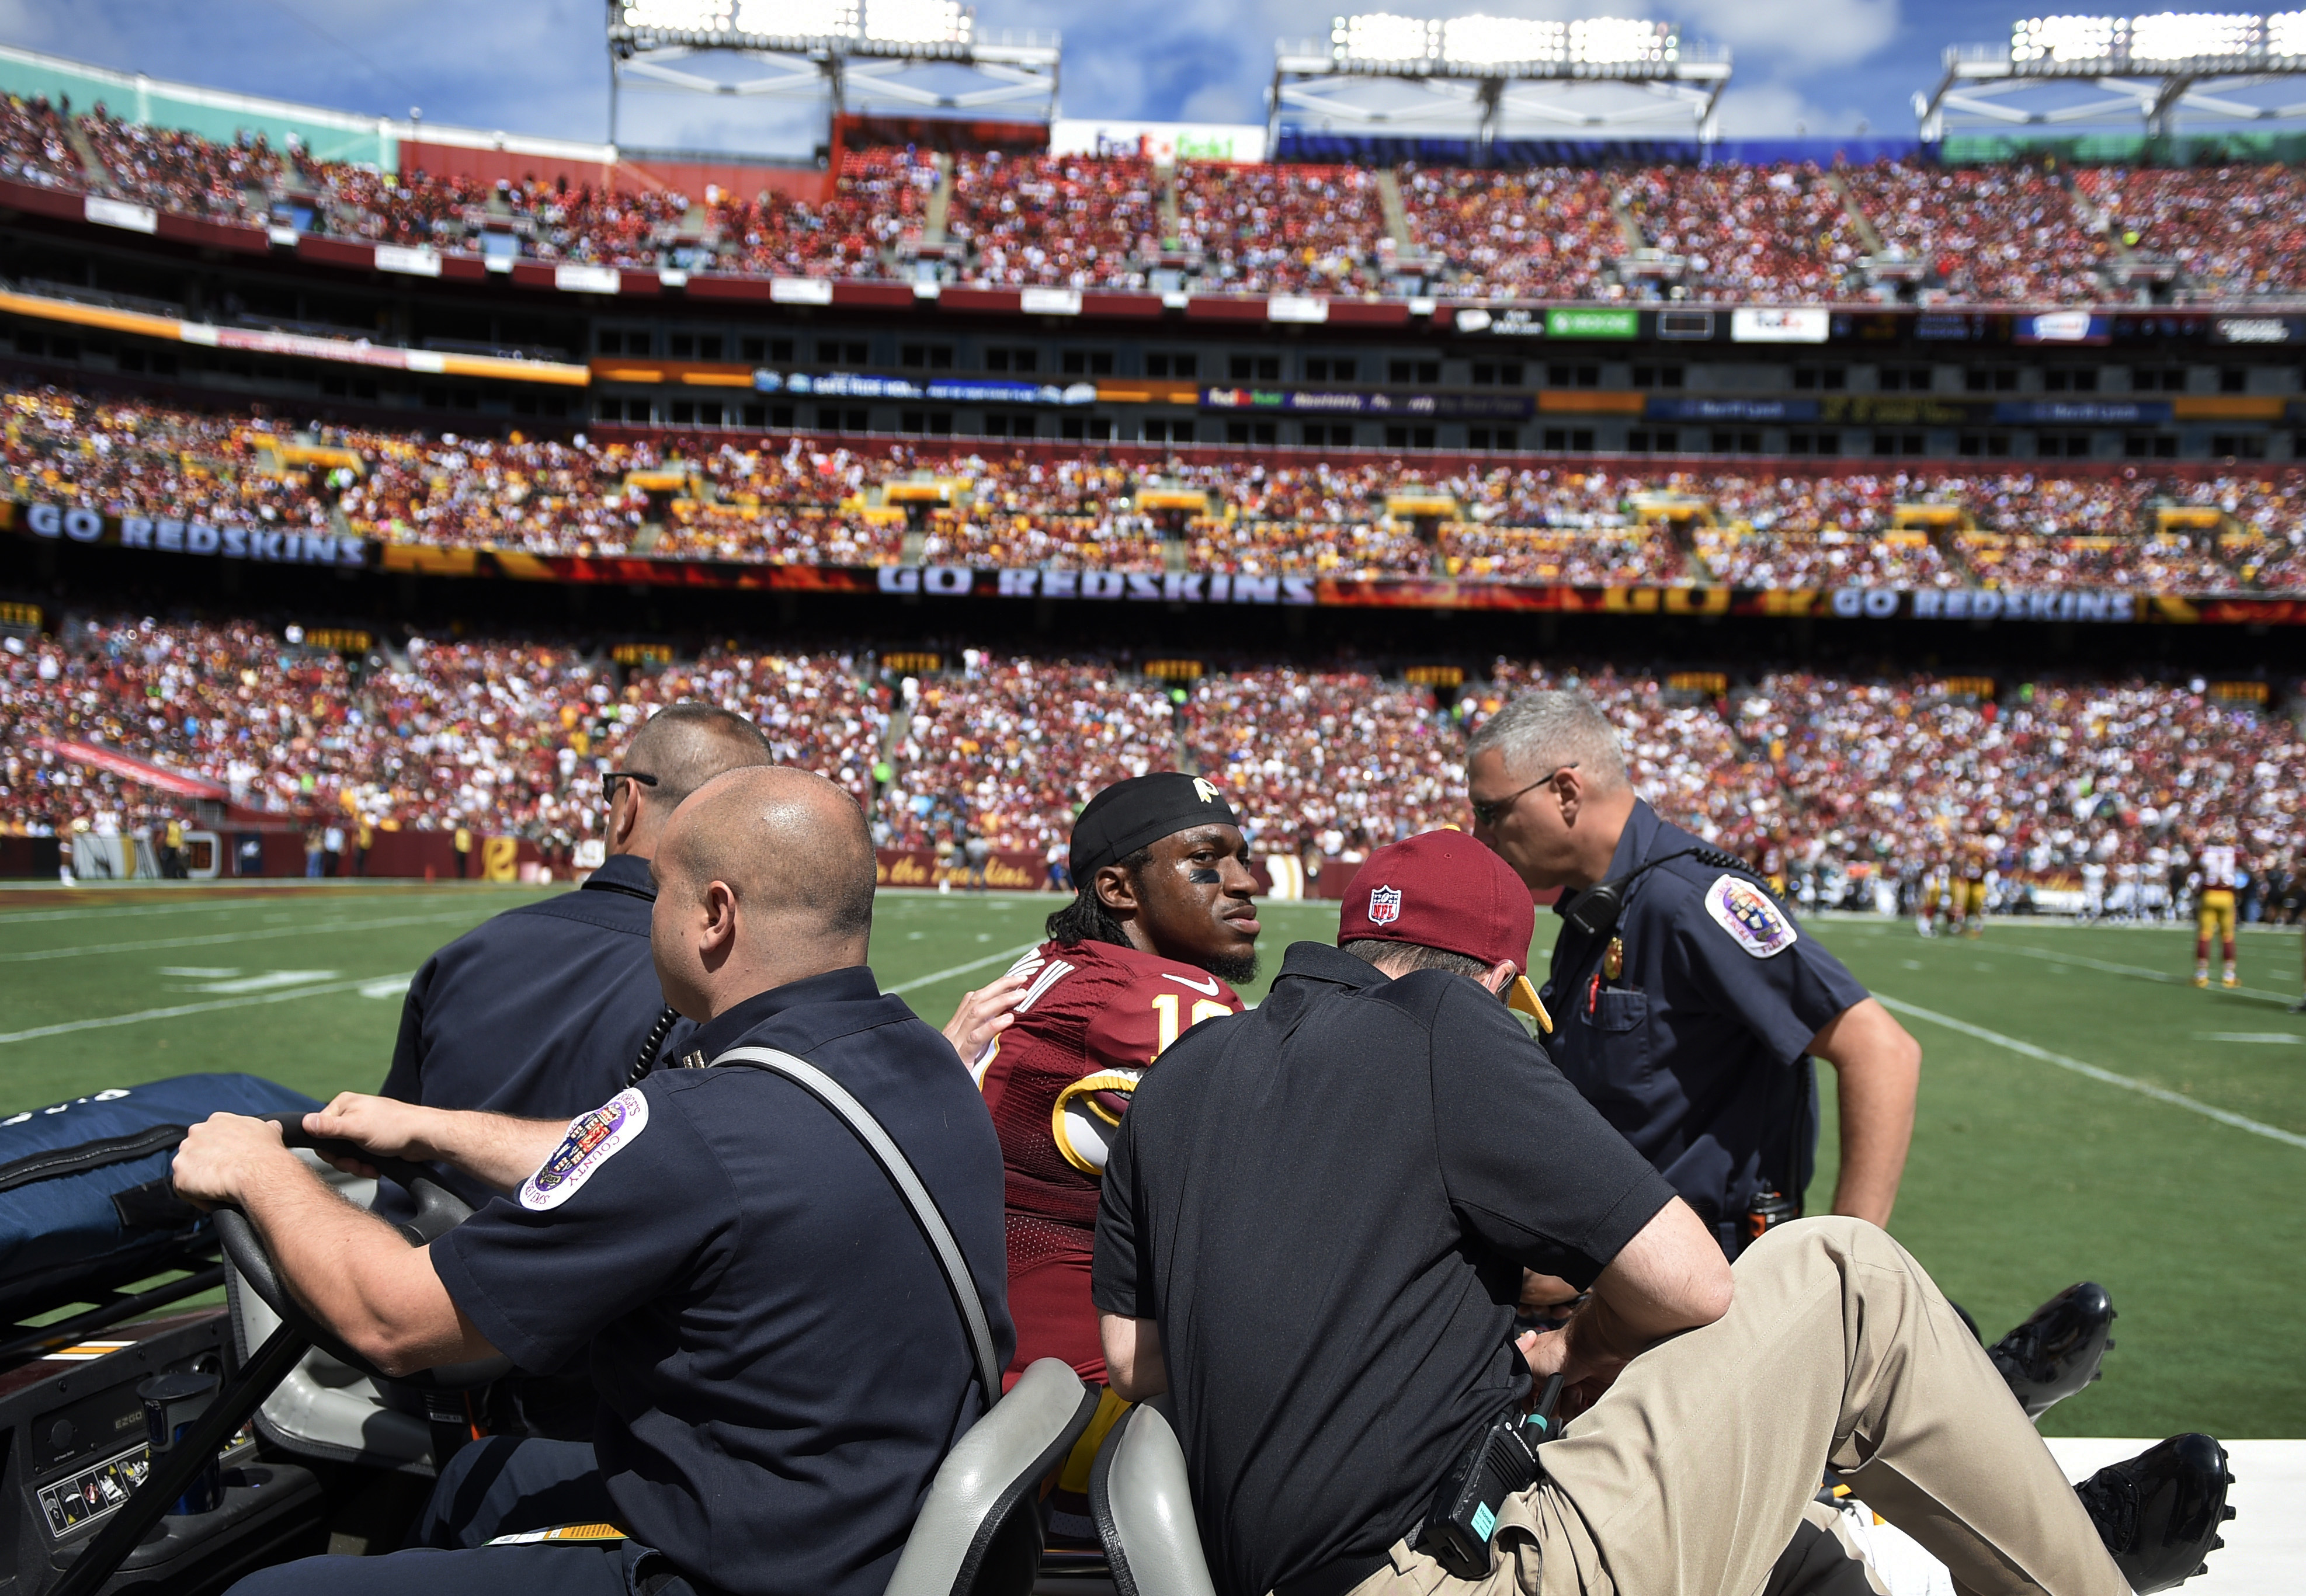 Washington Redskins quarterback Robert Griffin III (10) leaves the game on a cart after injuring his left ankle during the first half of an NFL football game against the Jacksonville Jaguars Sunday, Sept. 14, 2014, in Landover, Md. The Redskins have said Griffin will not return to the game. (AP Photo/Nick Wass)